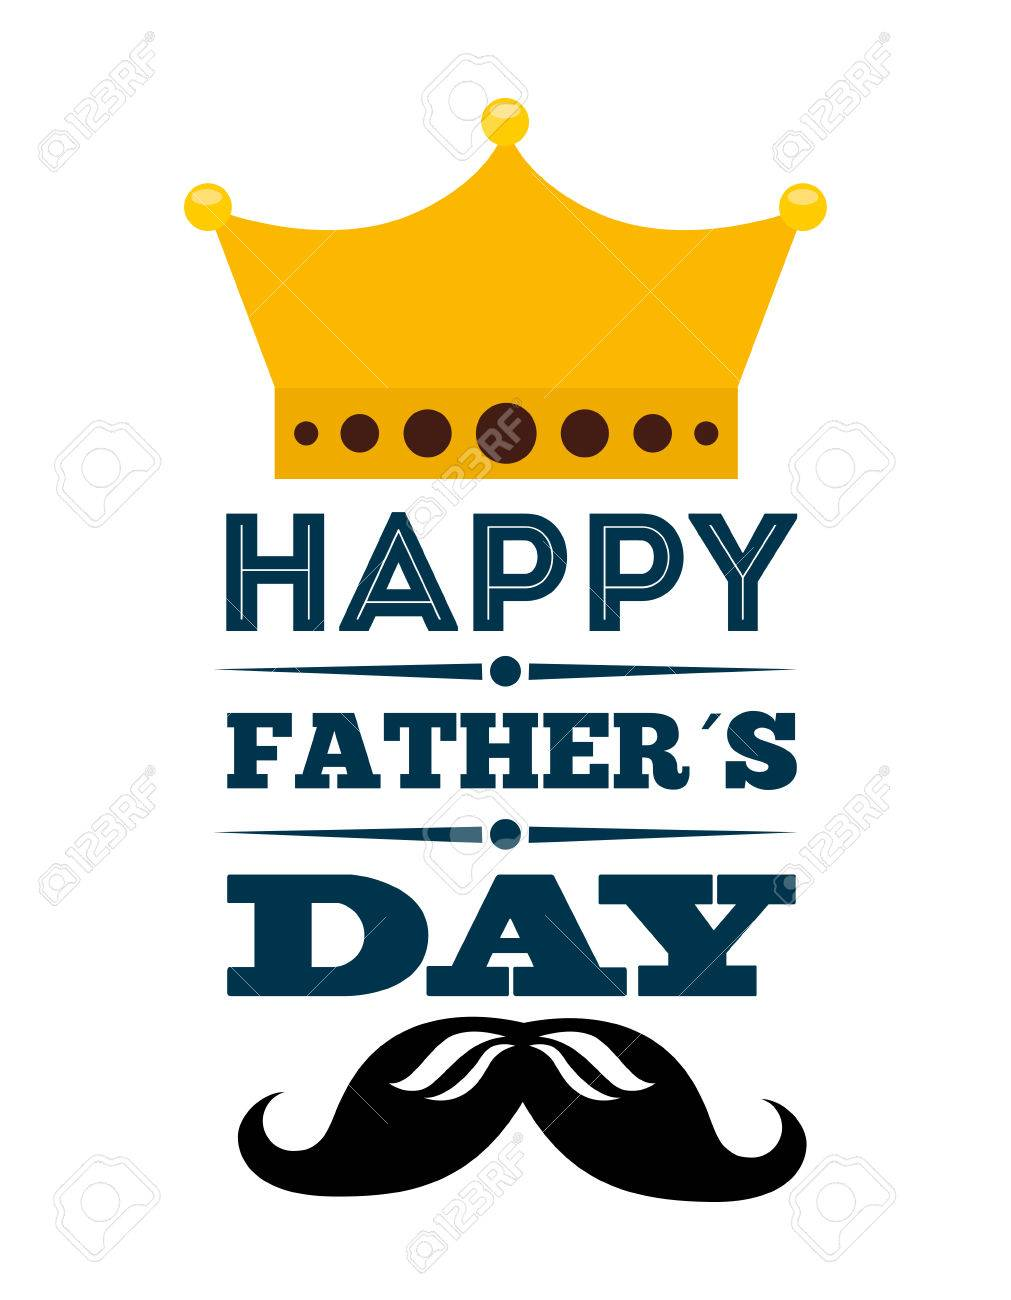 hight resolution of happy fathers day design vector illustration eps10 graphic stock vector 39296871